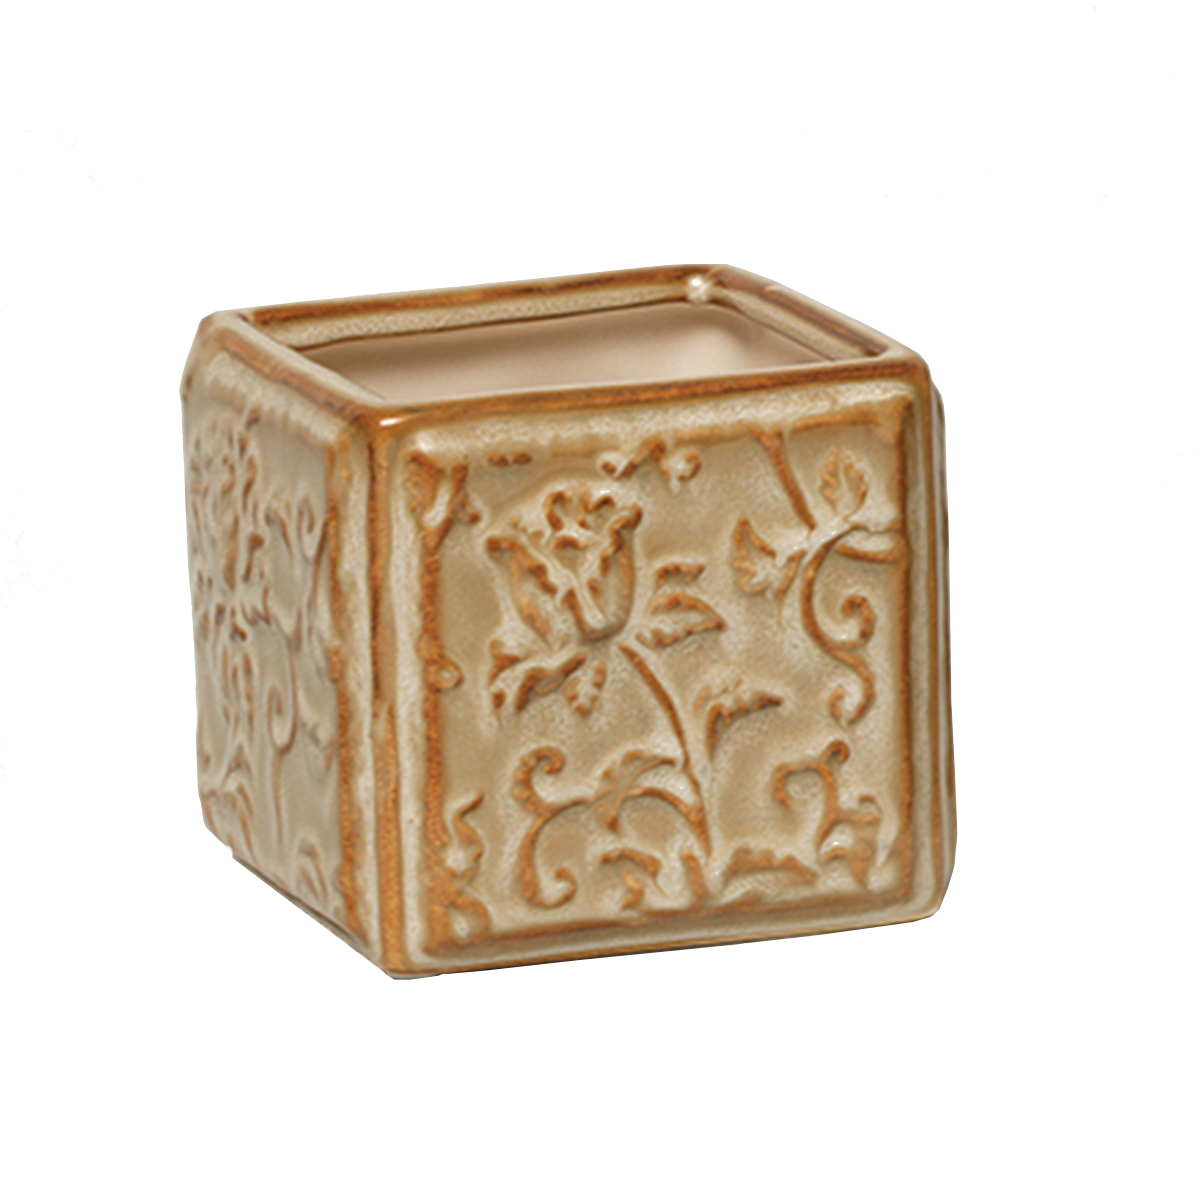 "SQUARE FLORAL PLANTER 3.5"" X 3.5"" X 3.25"" BEIGE 70sp"